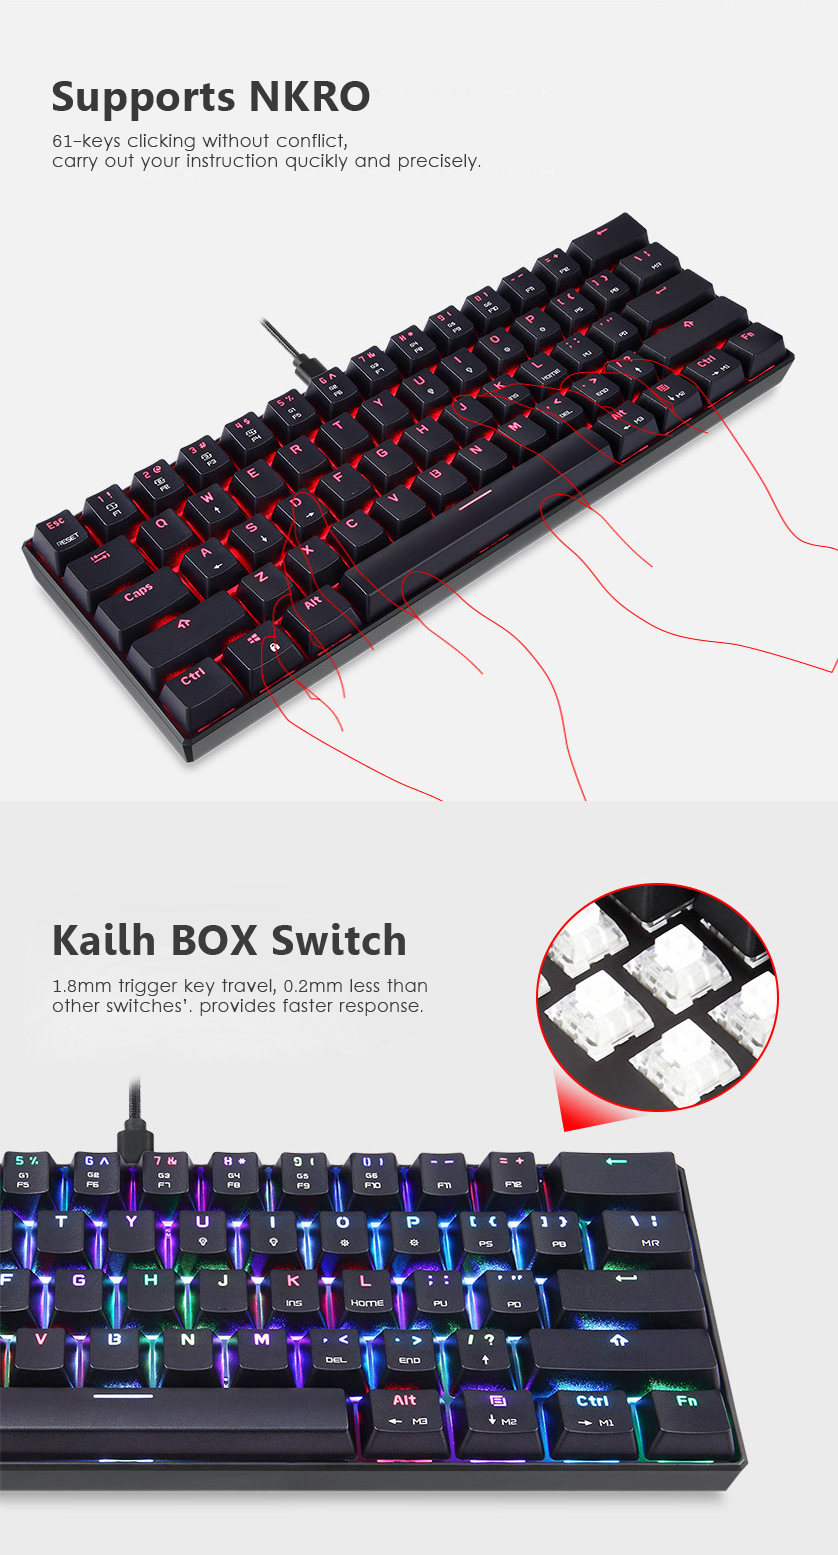 Motospeed-CK61-Kailh-BOX-Switch-Detachable-Type-C-61-Key-NKRO-RGB-Mechanical-Gaming-Keyboard-1298127